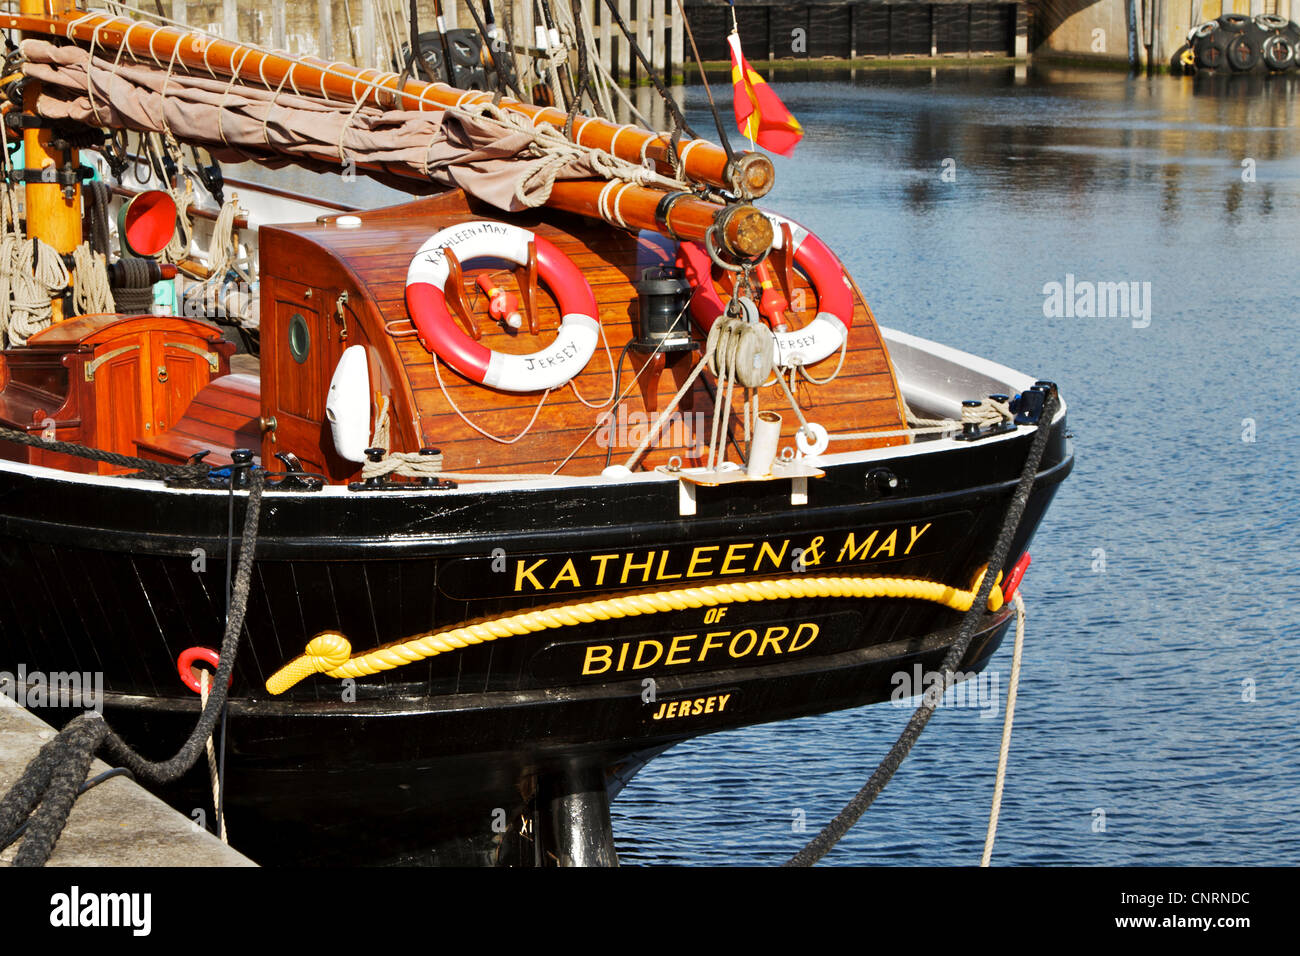 Tall sailing ship KATHLEEN & MAY, berthed in canning dock, in the Albert Dock complex, Liverpool, Merseyside, - Stock Image